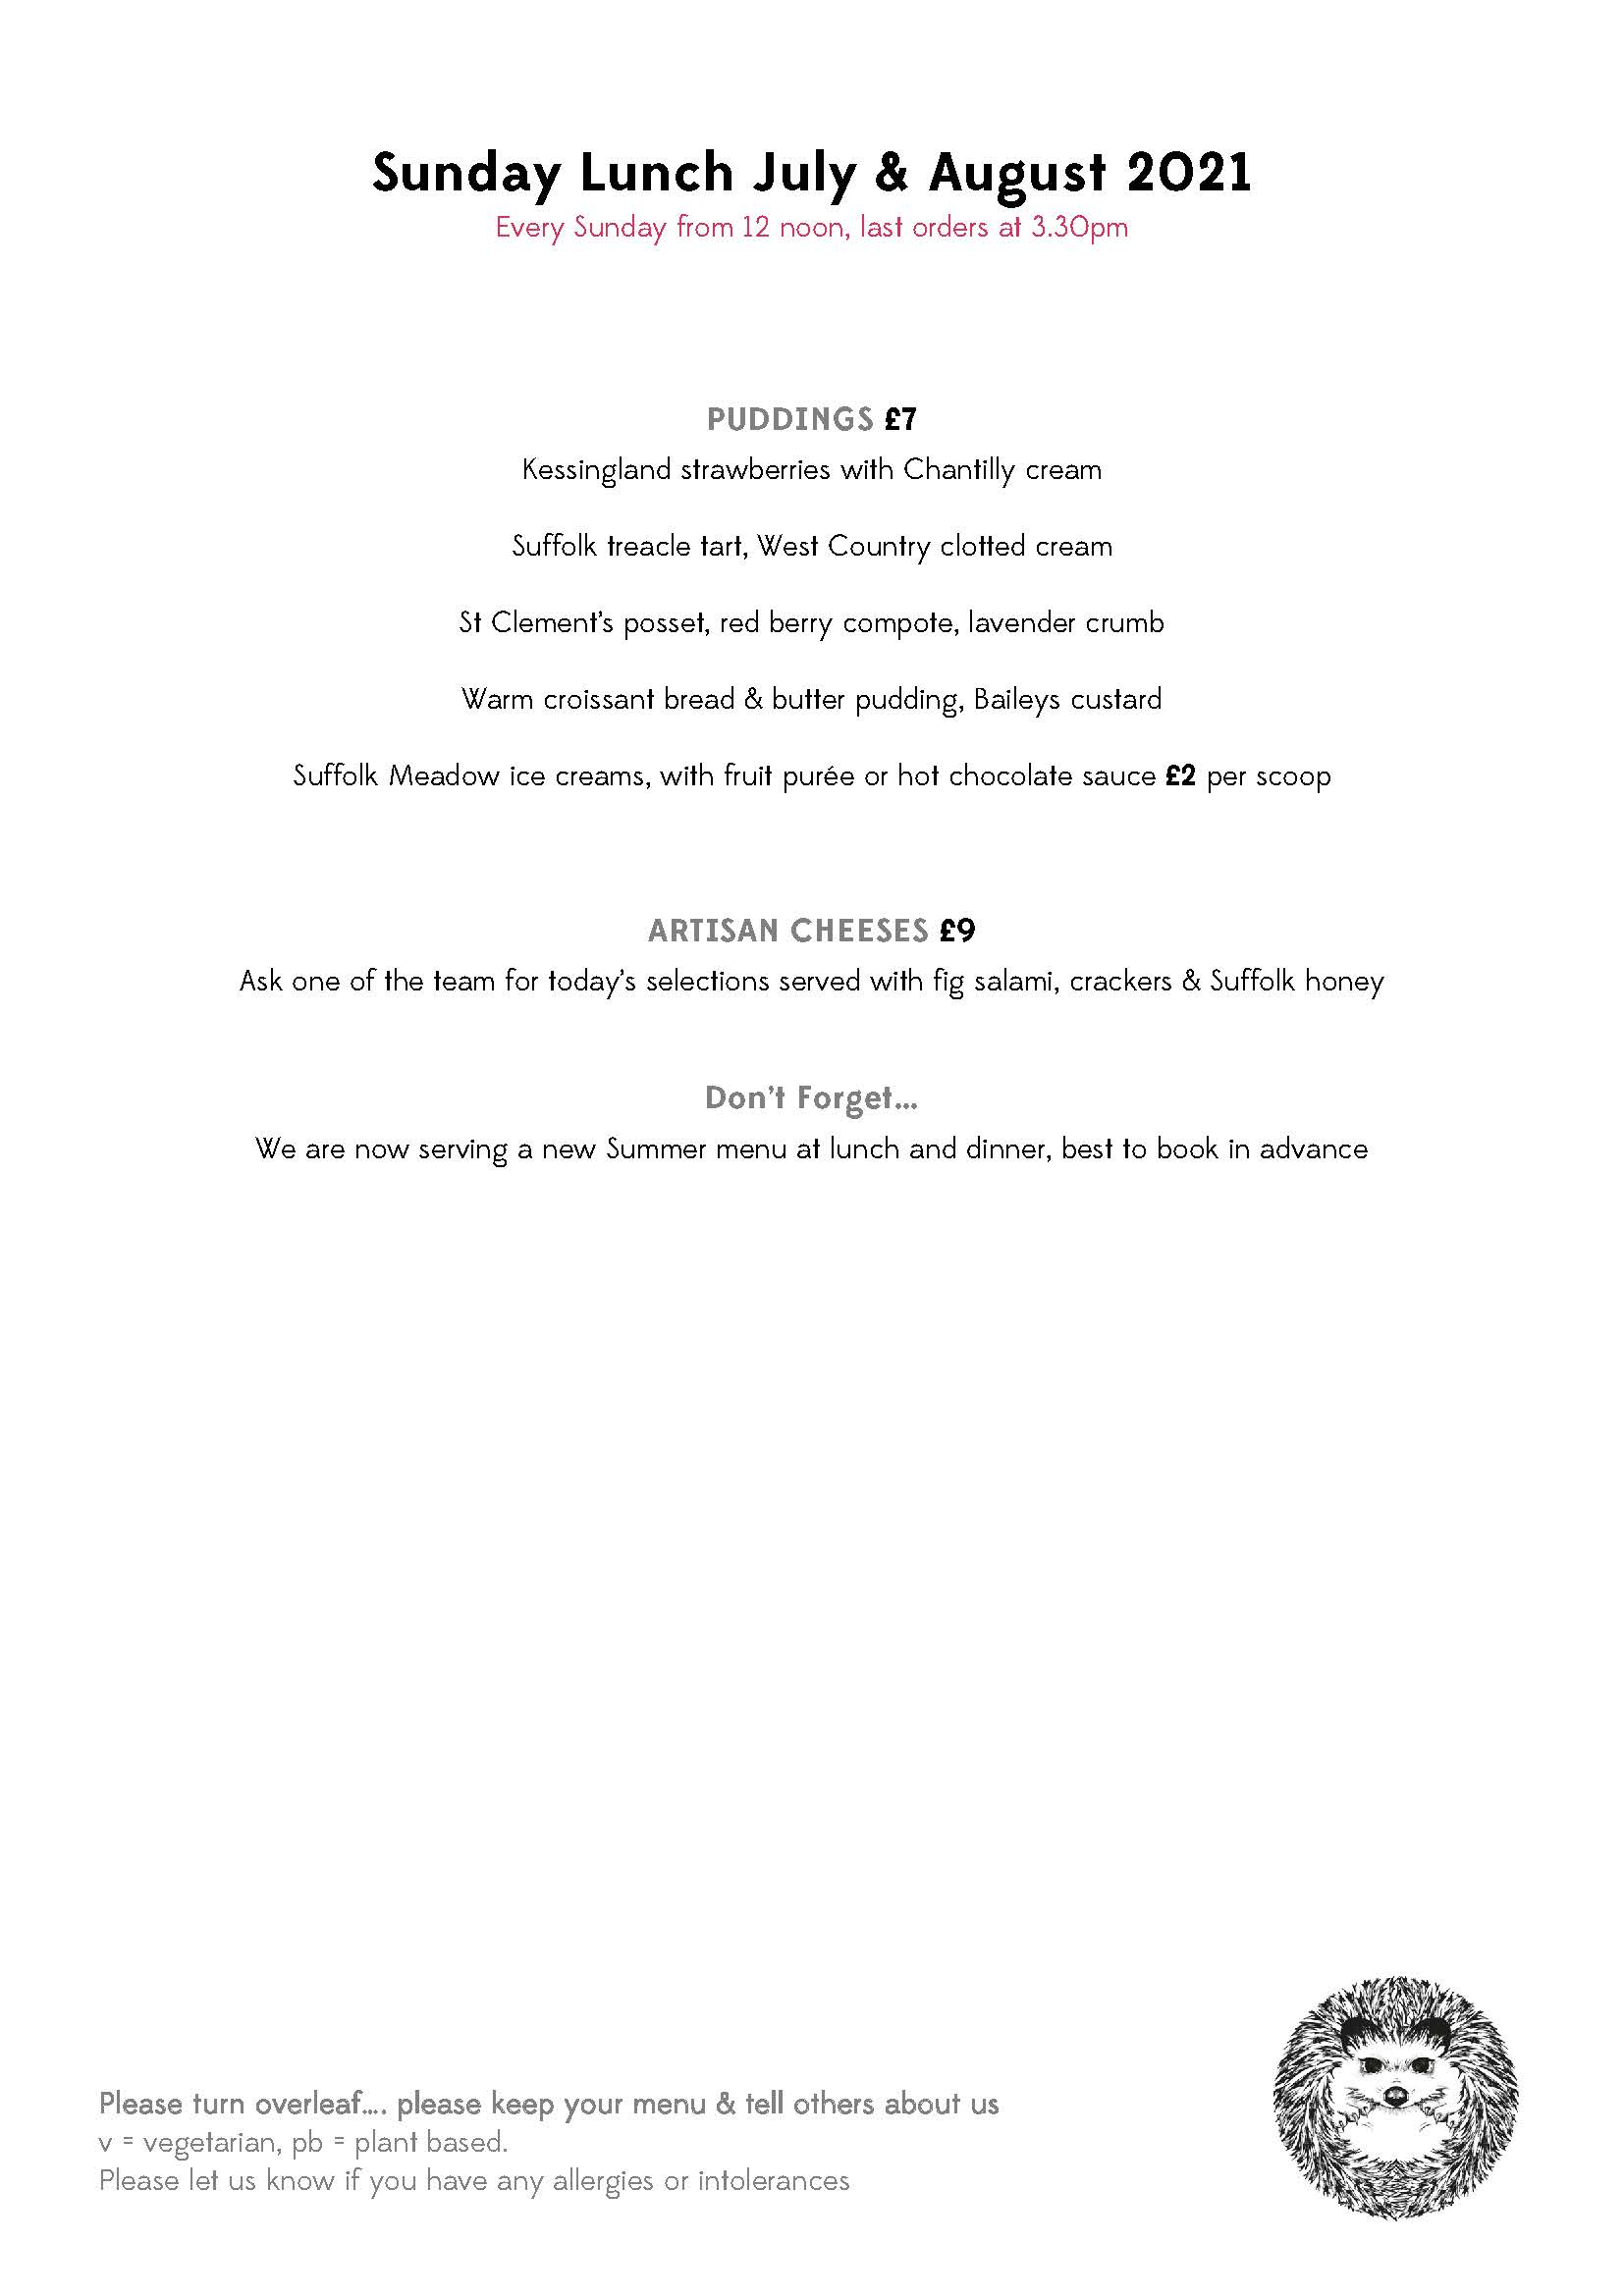 Sunday Lunch Menu July August 2021_Page_2